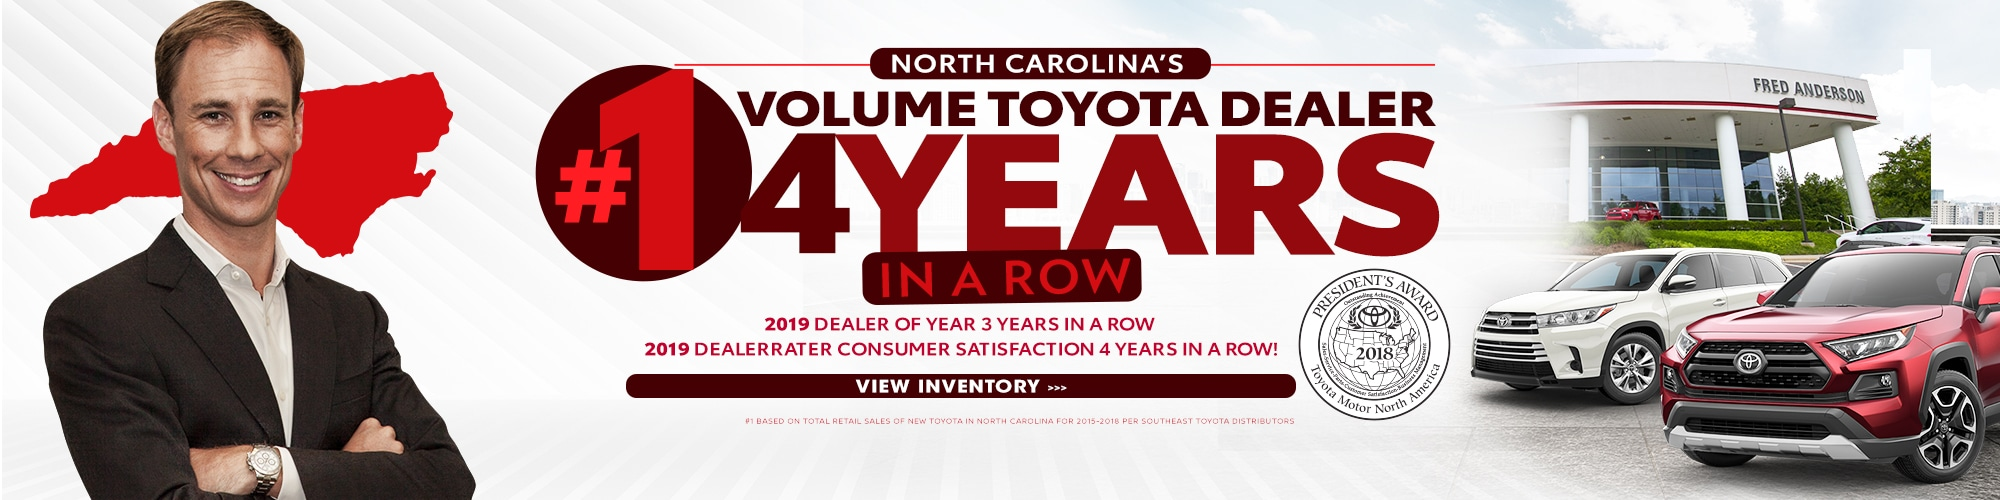 Fred Anderson Toyota Raleigh >> Toyota Dealership Raleigh Nc Near Durham Cary Wake Forest